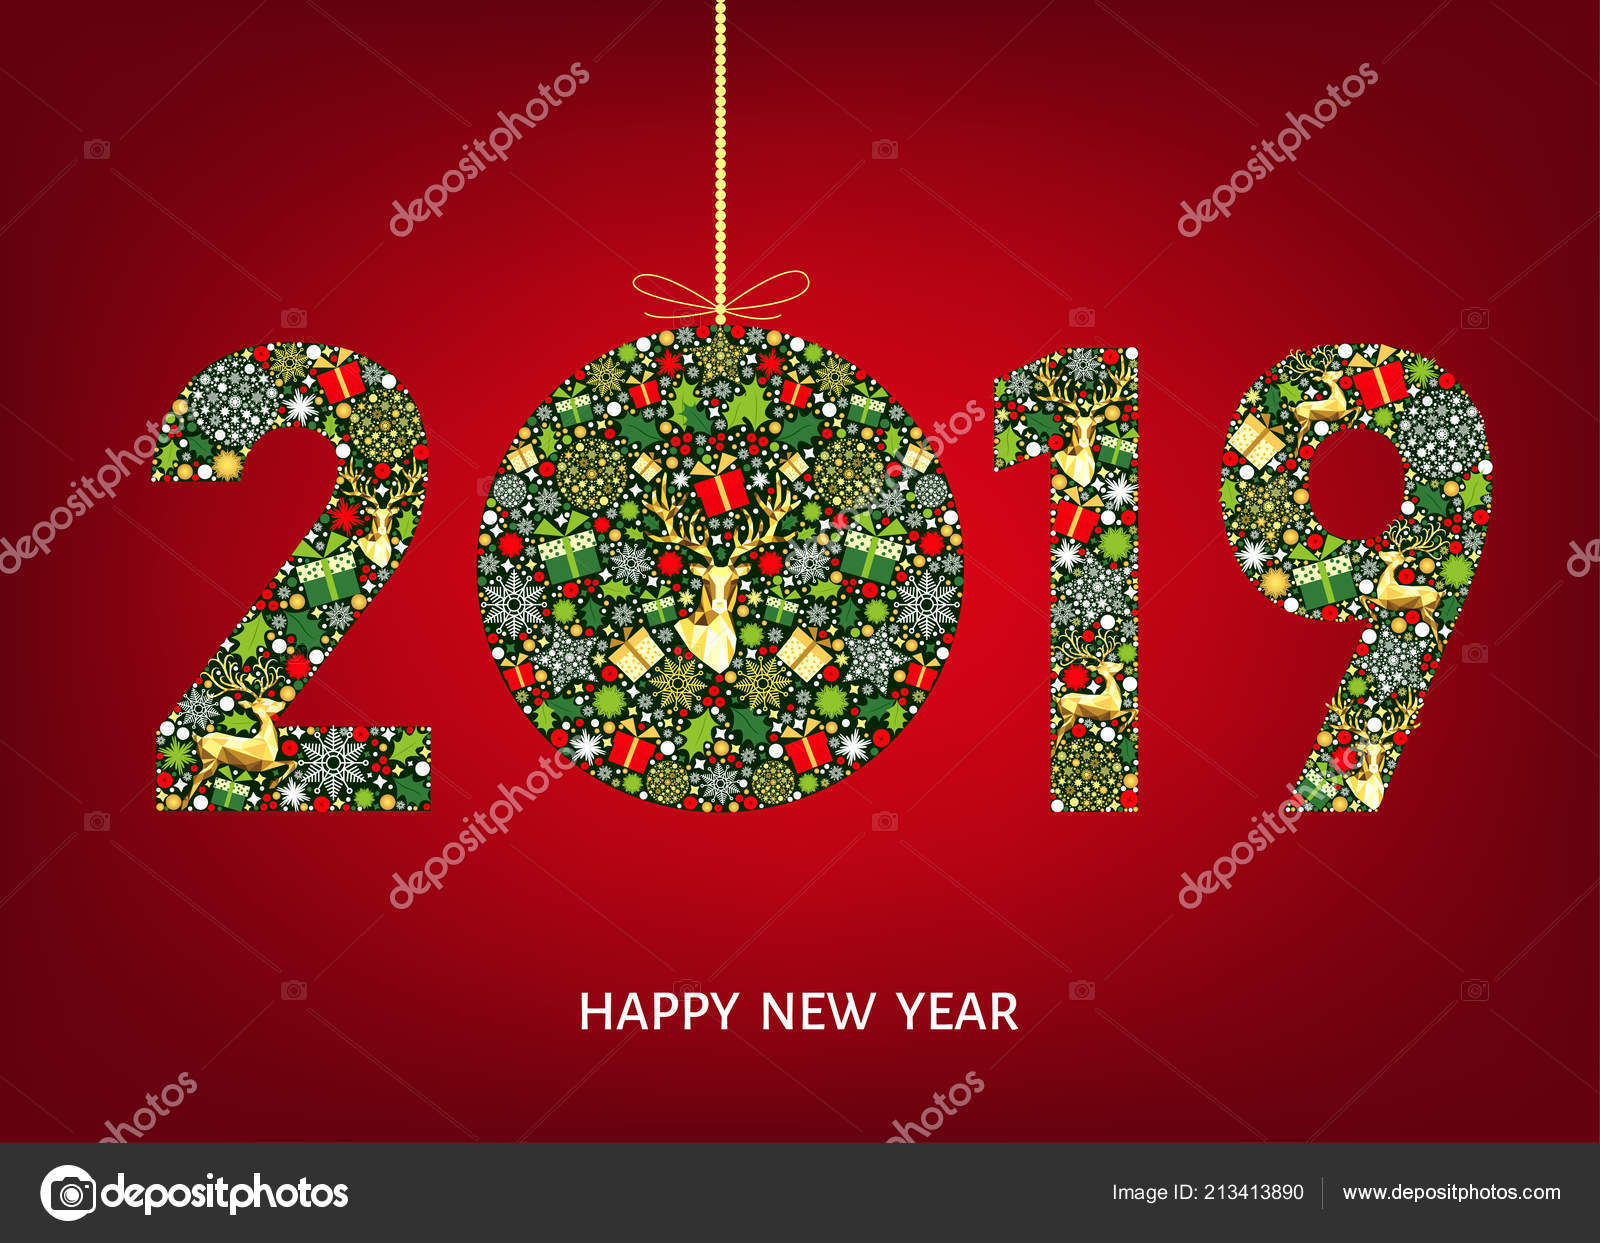 2019 happy new year greeting card on red background with christmas ball with gold reindeer gift boxes and snowflakes colorful ornament vector decoration